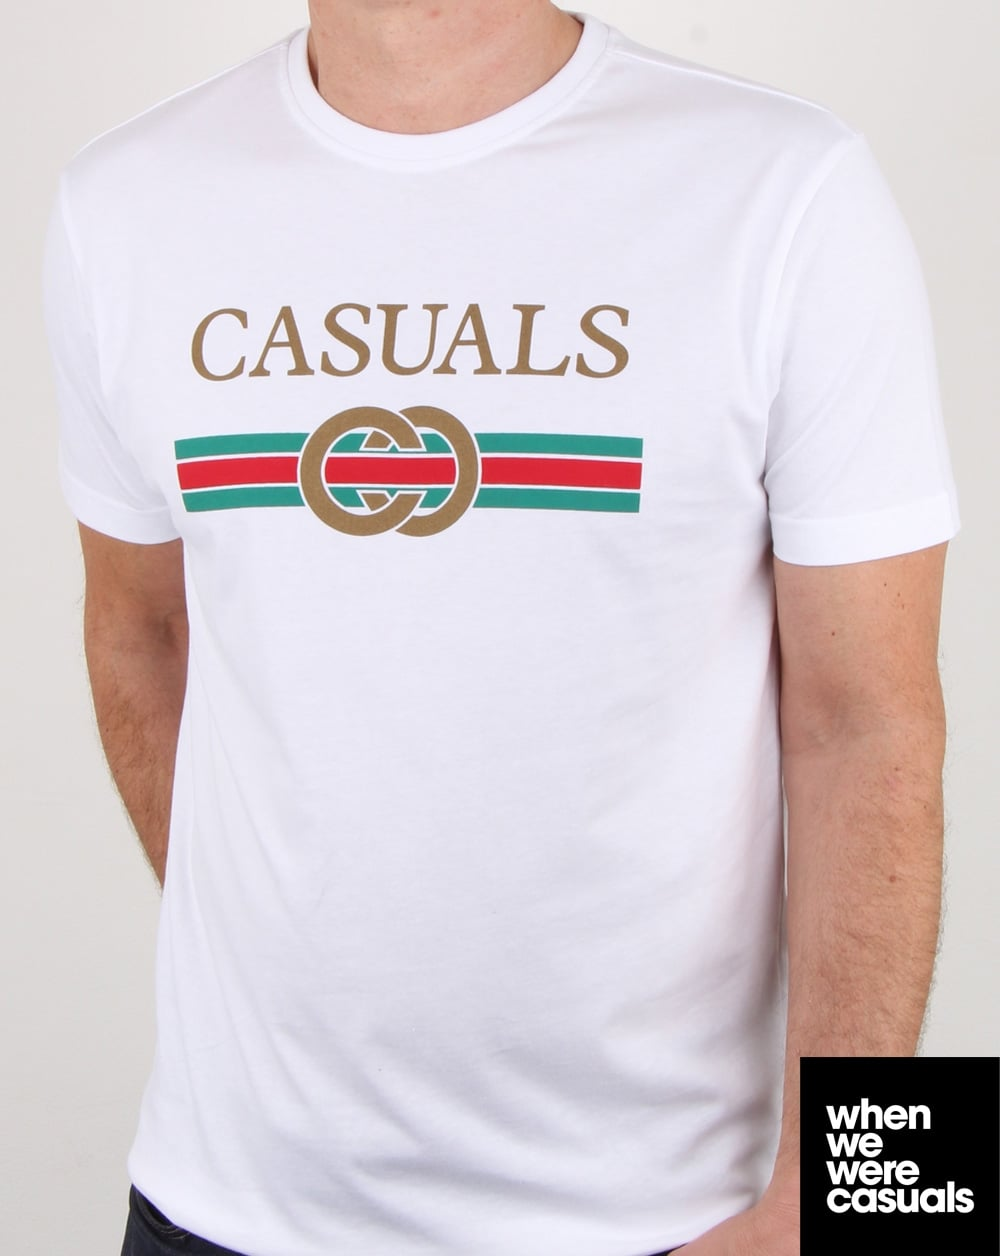 80s casual classics designer casual t shirt white mens for Casual white t shirt